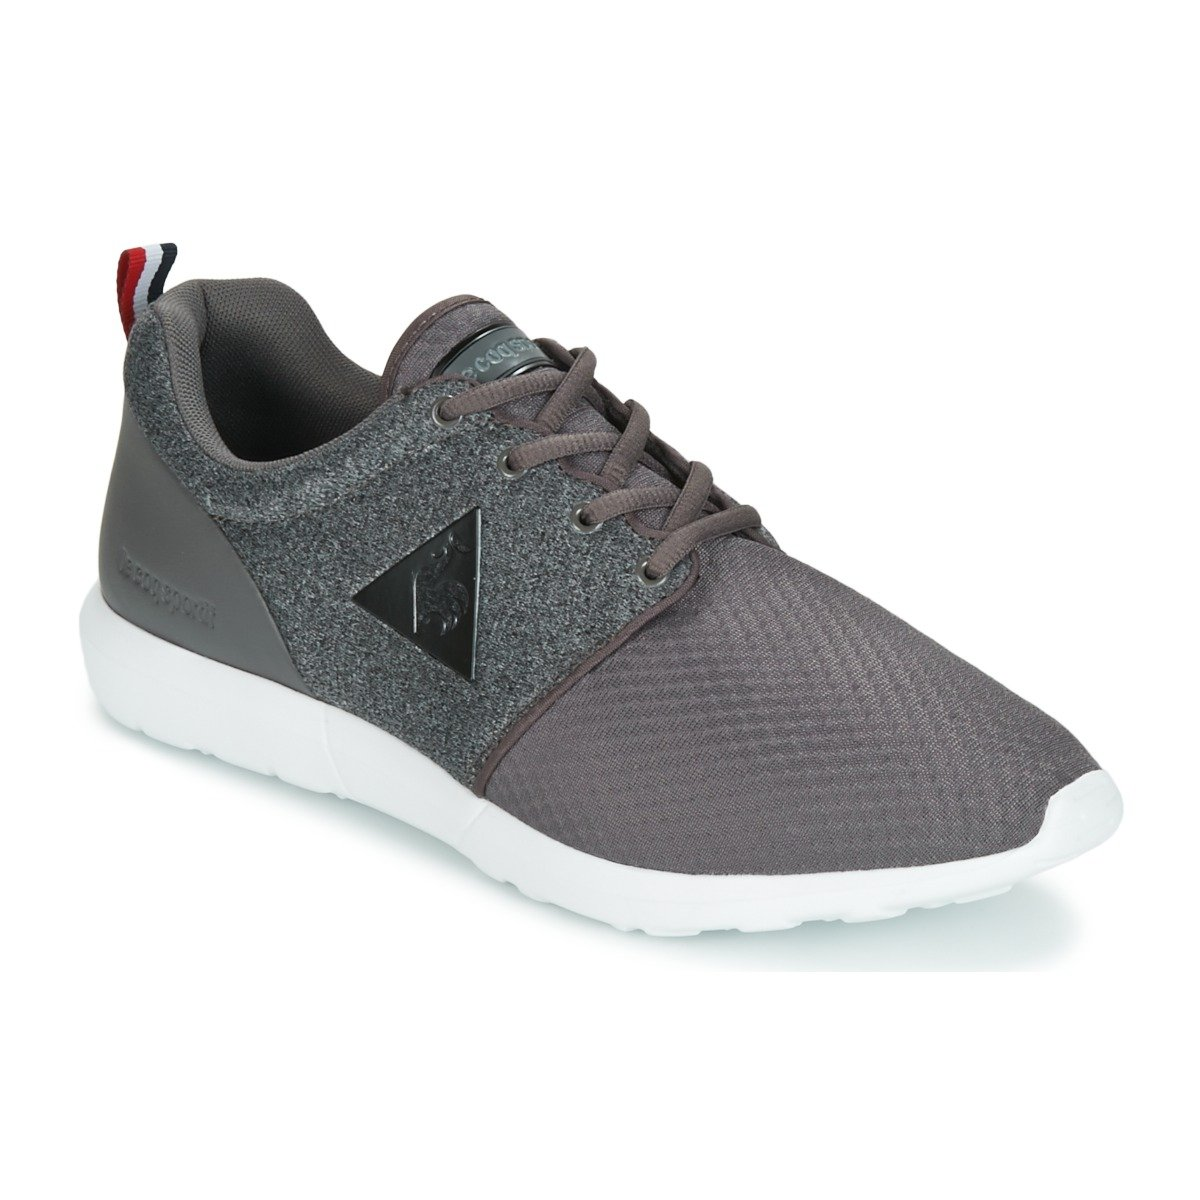 Le Coq Sportif Dynacomf Knit Mesh Chaussure Homme Gris Taille